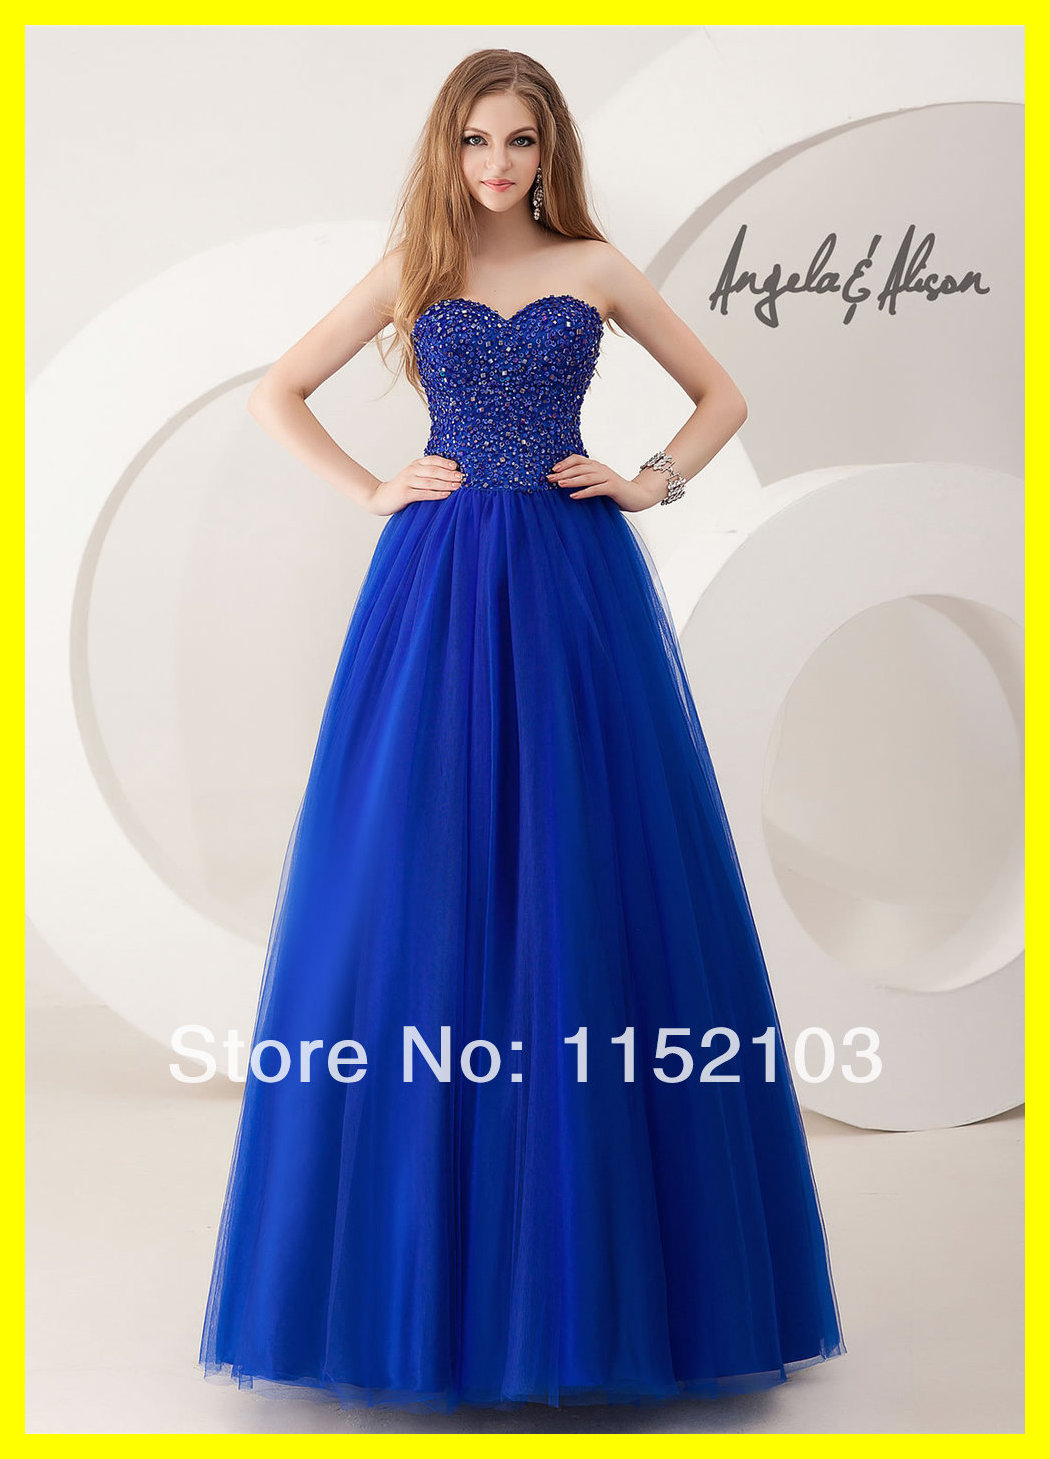 Prom dresses toronto stores eligent prom dresses for Second hand wedding dresses near me